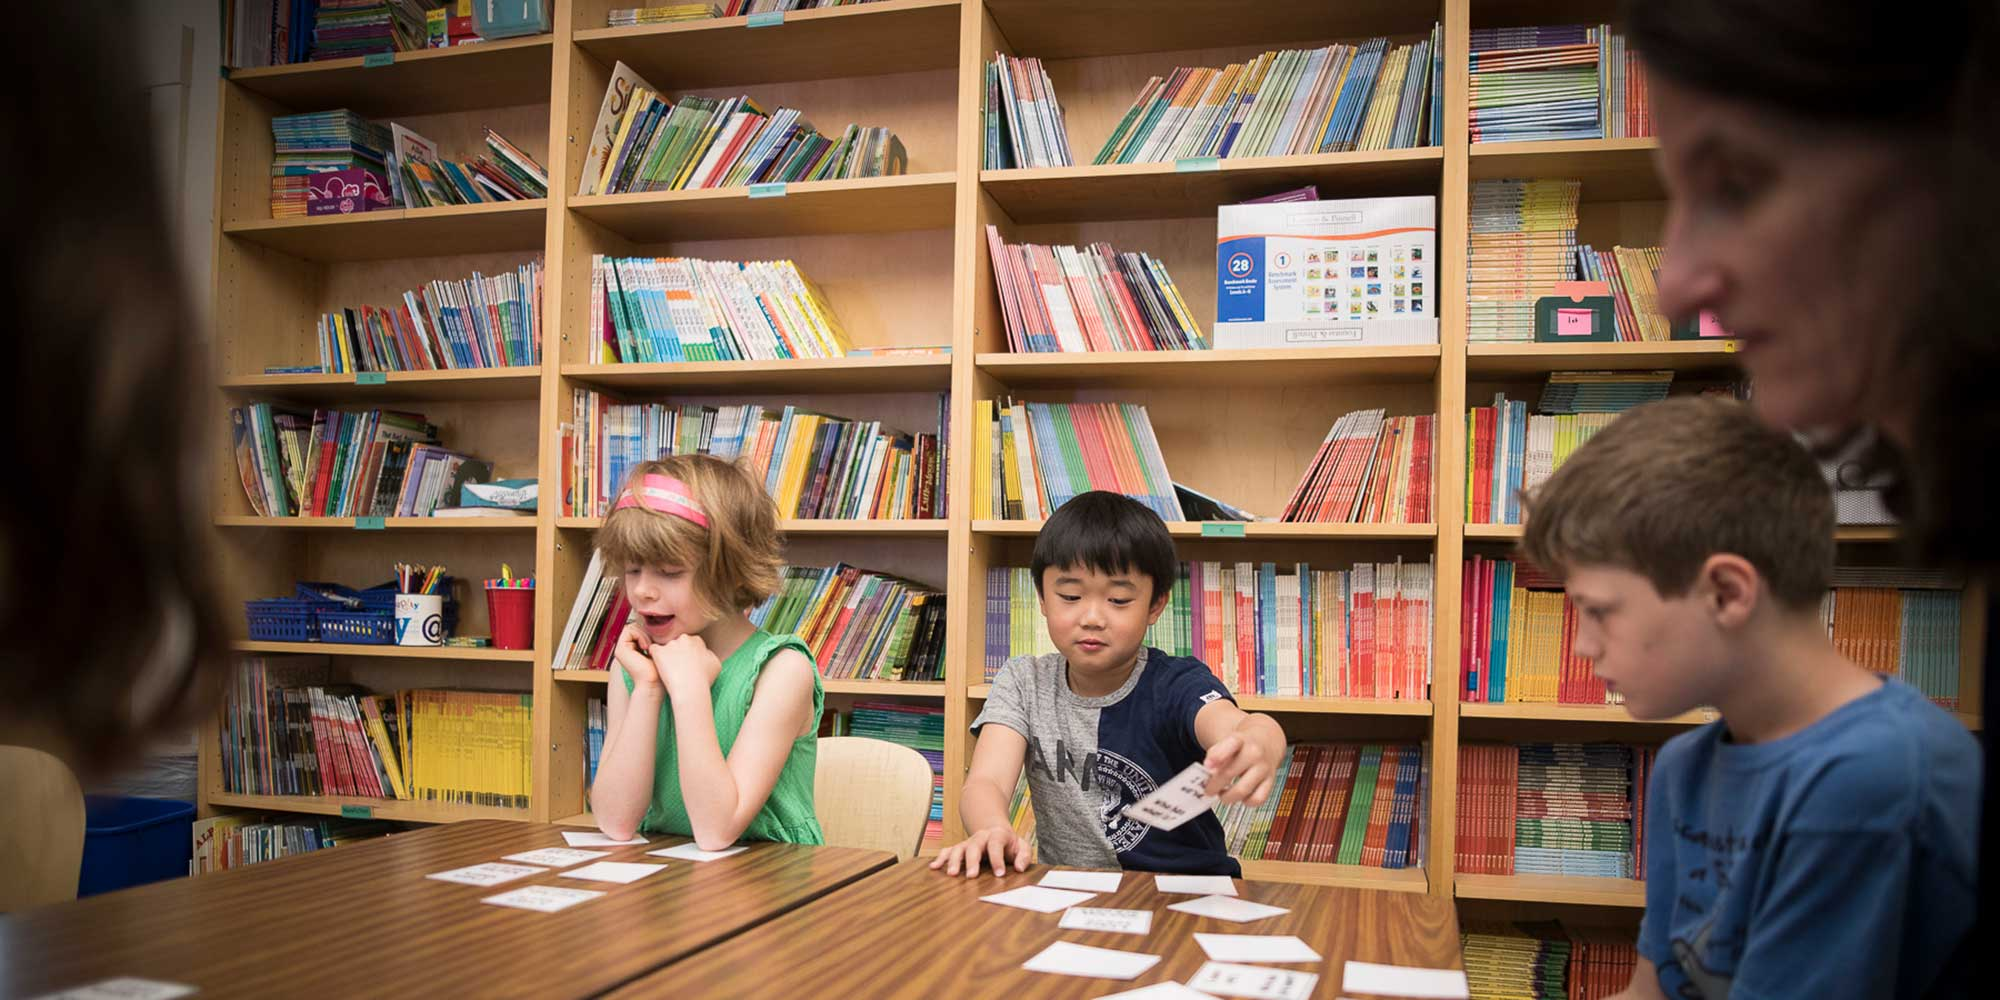 Lower school students in the reading room